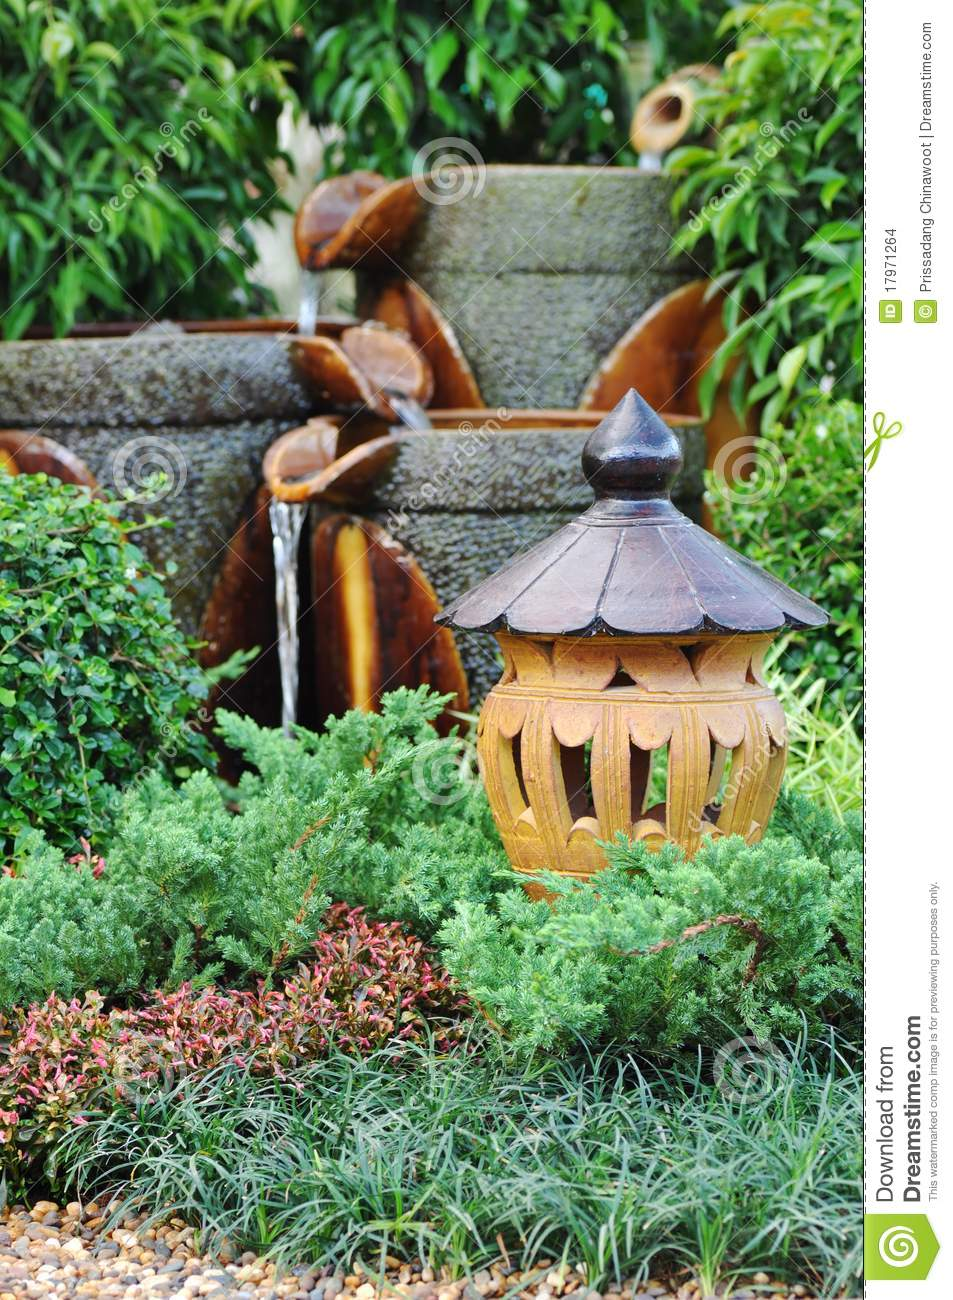 Garden decoration stock photo. Image of relax, pottery - 17971264